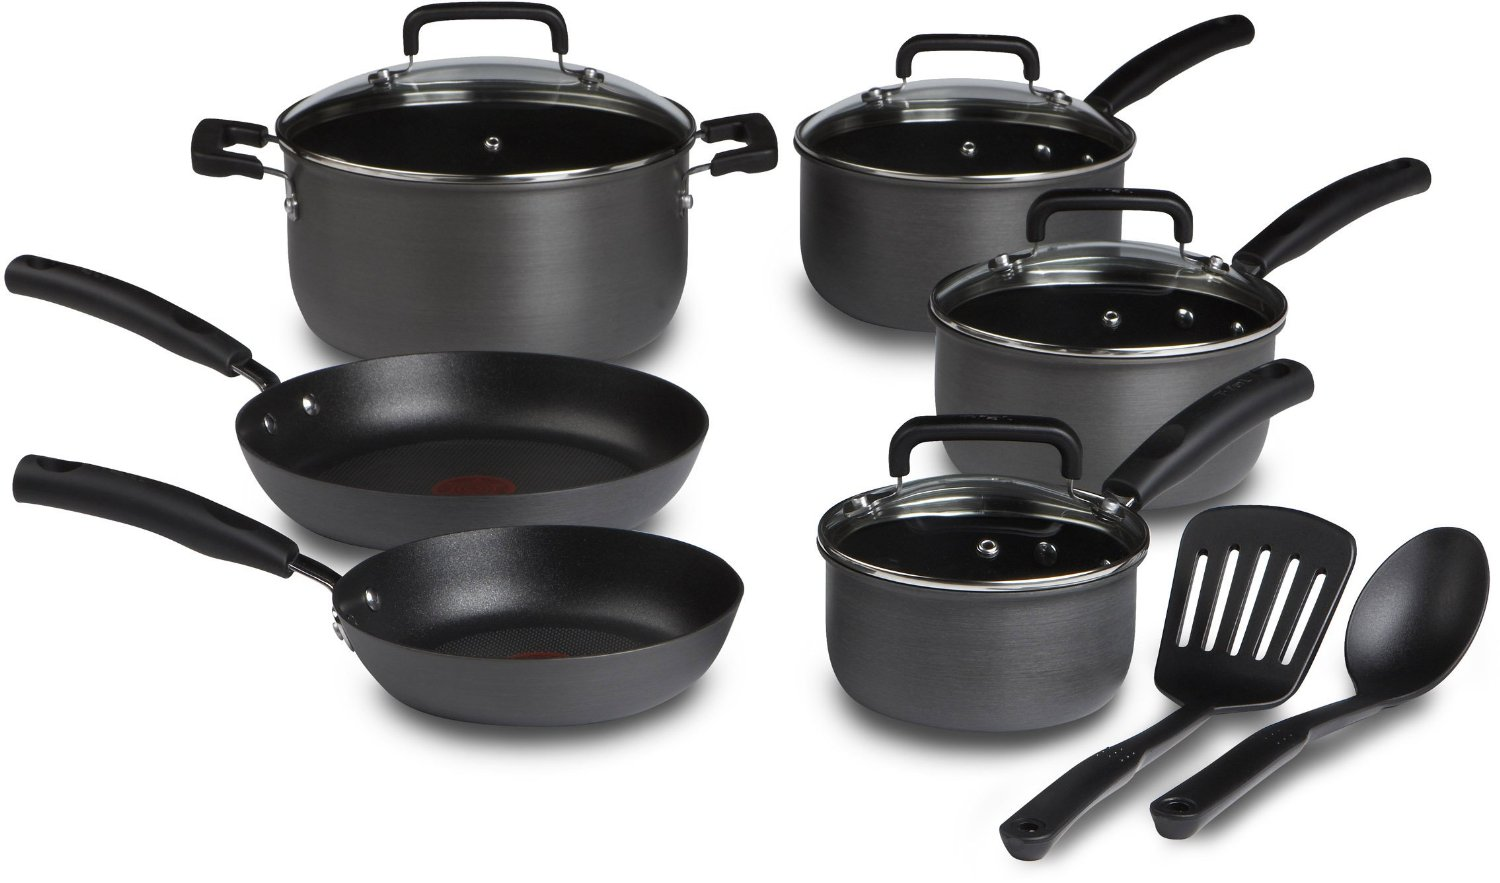 T Fal Signature Hard Anodized Cookware Review A Good Buy